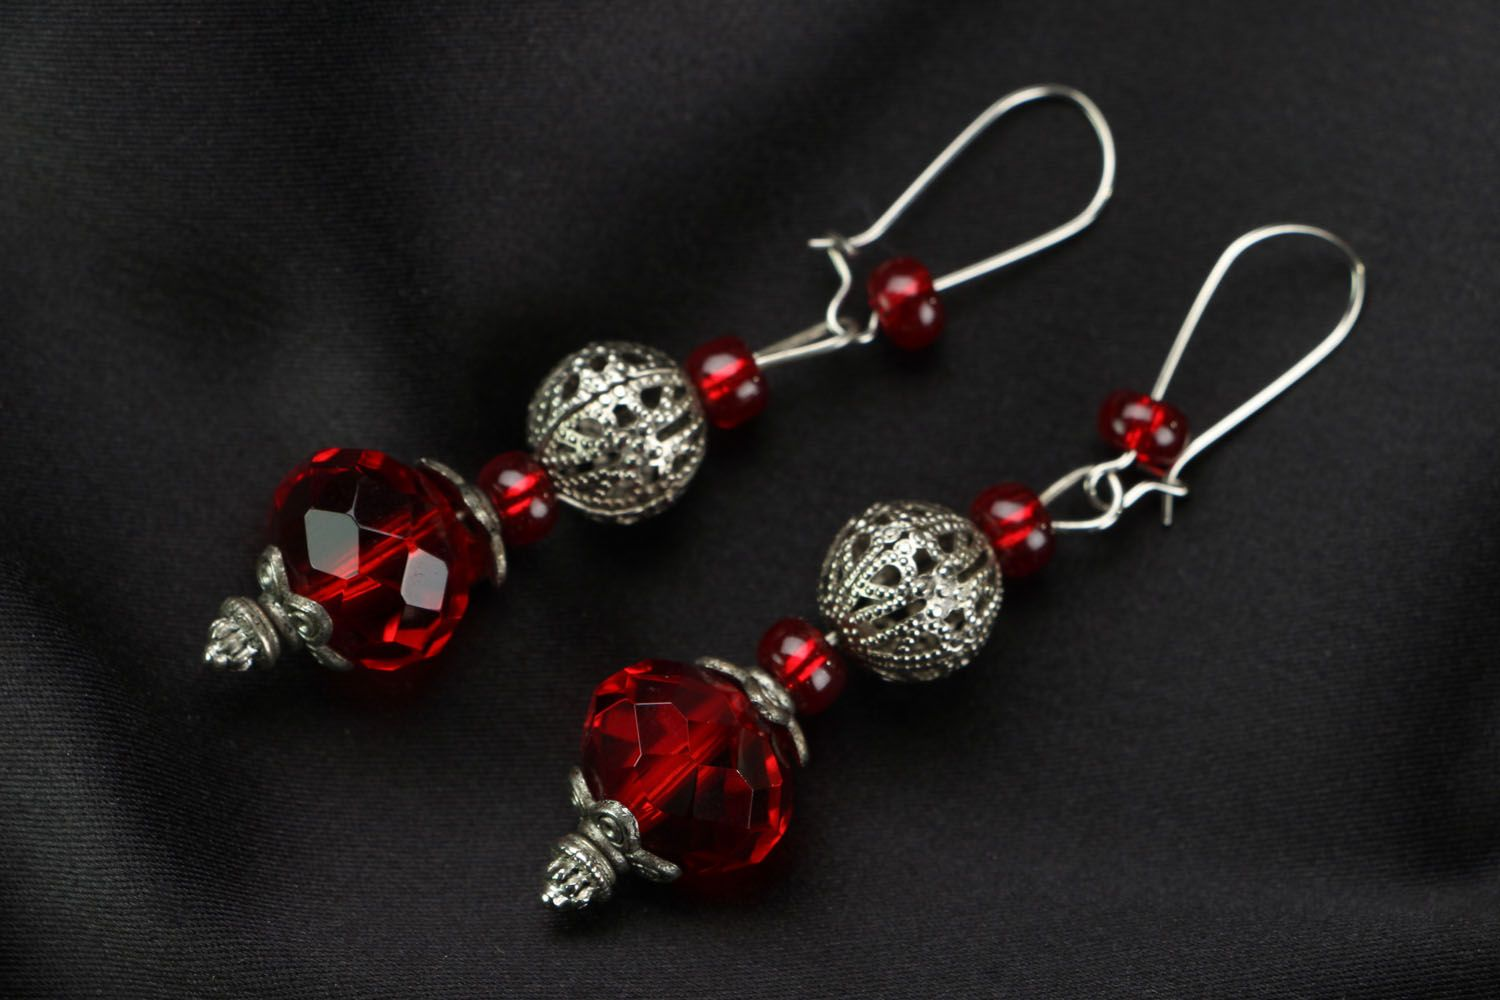 Earrings made of red plastic beads photo 1